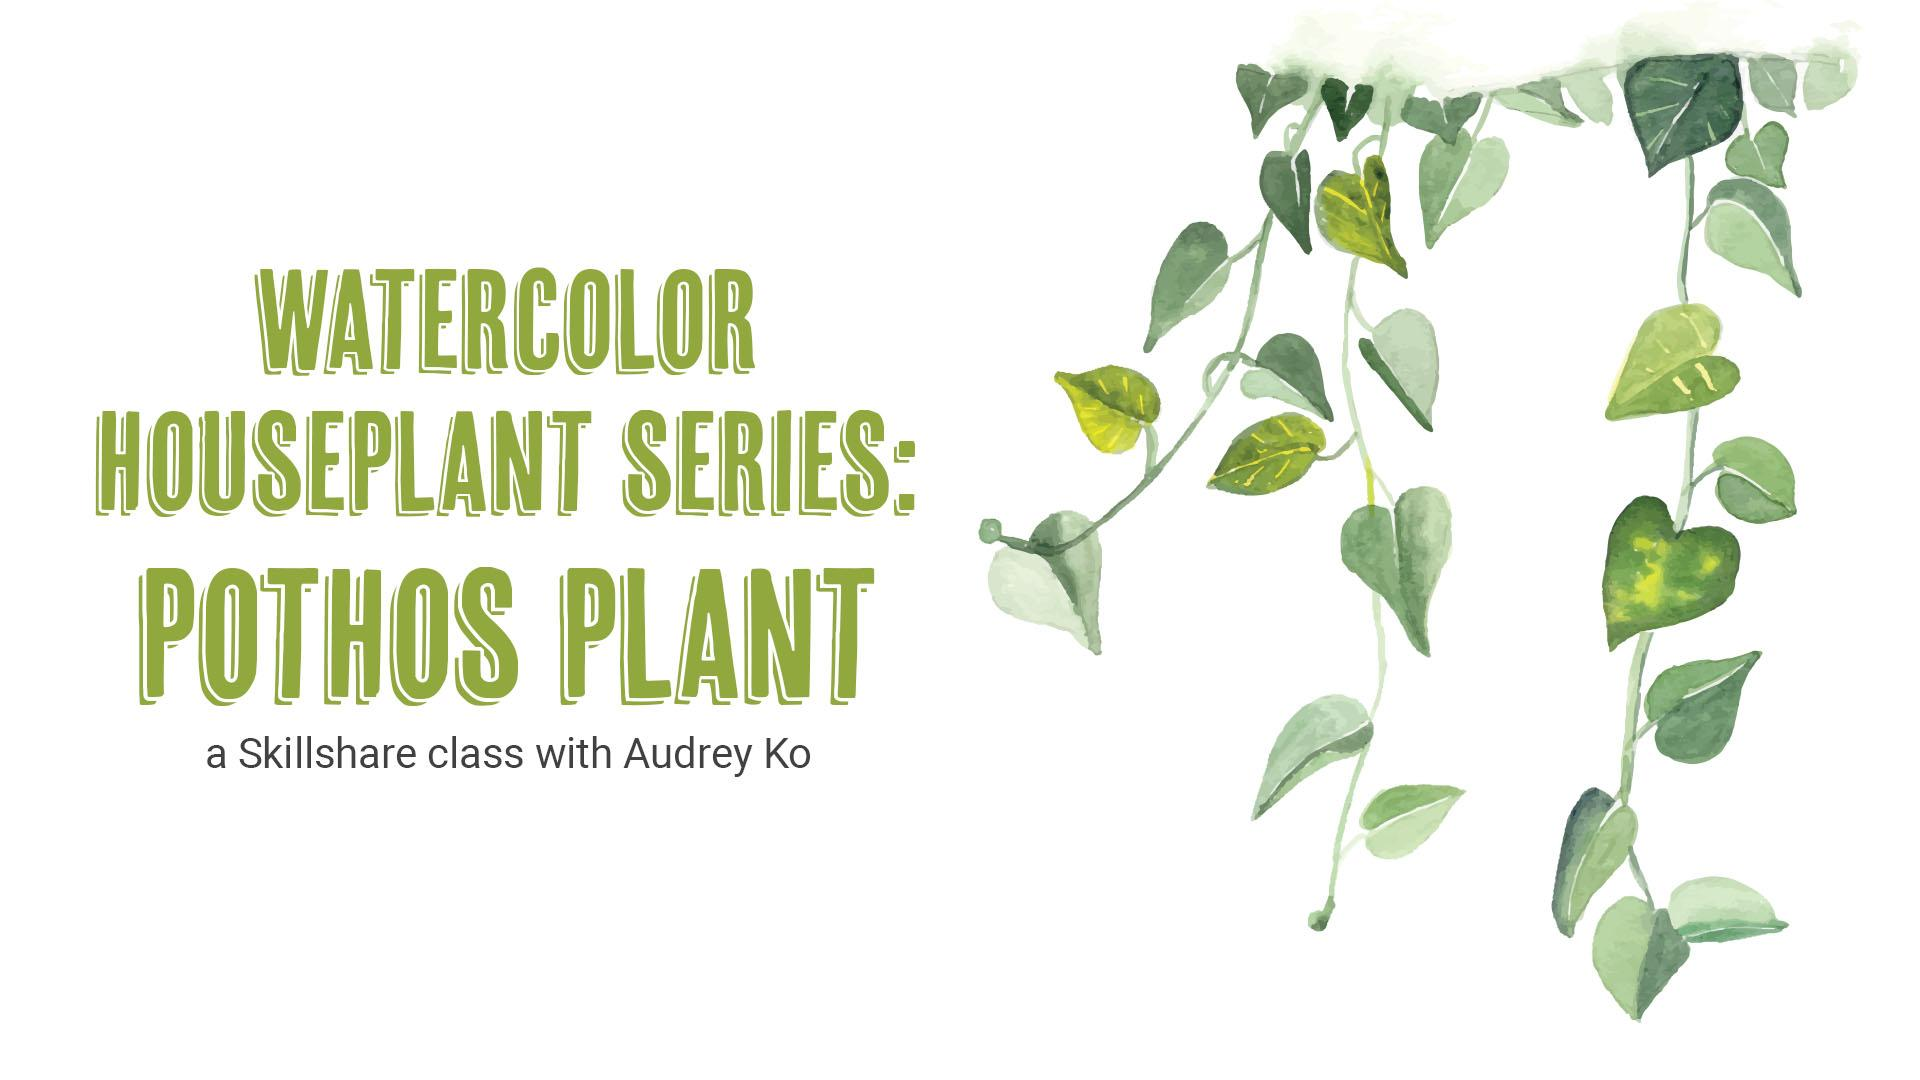 How To Paint Watercolor Houseplants Pothos Plant Audrey Ra Skillshare